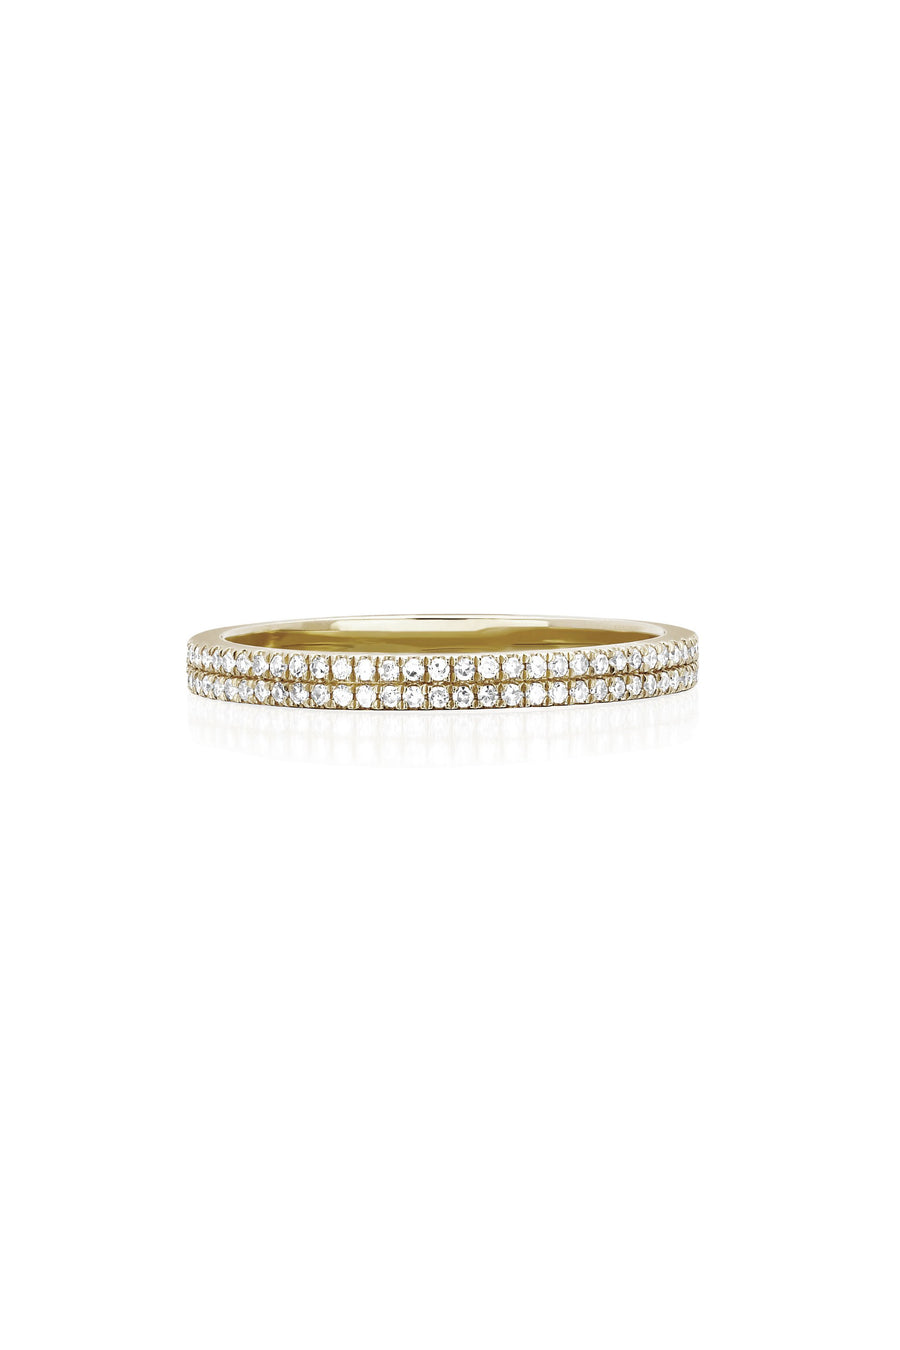 Double Diamond Eternity Band Ring - Pavilion